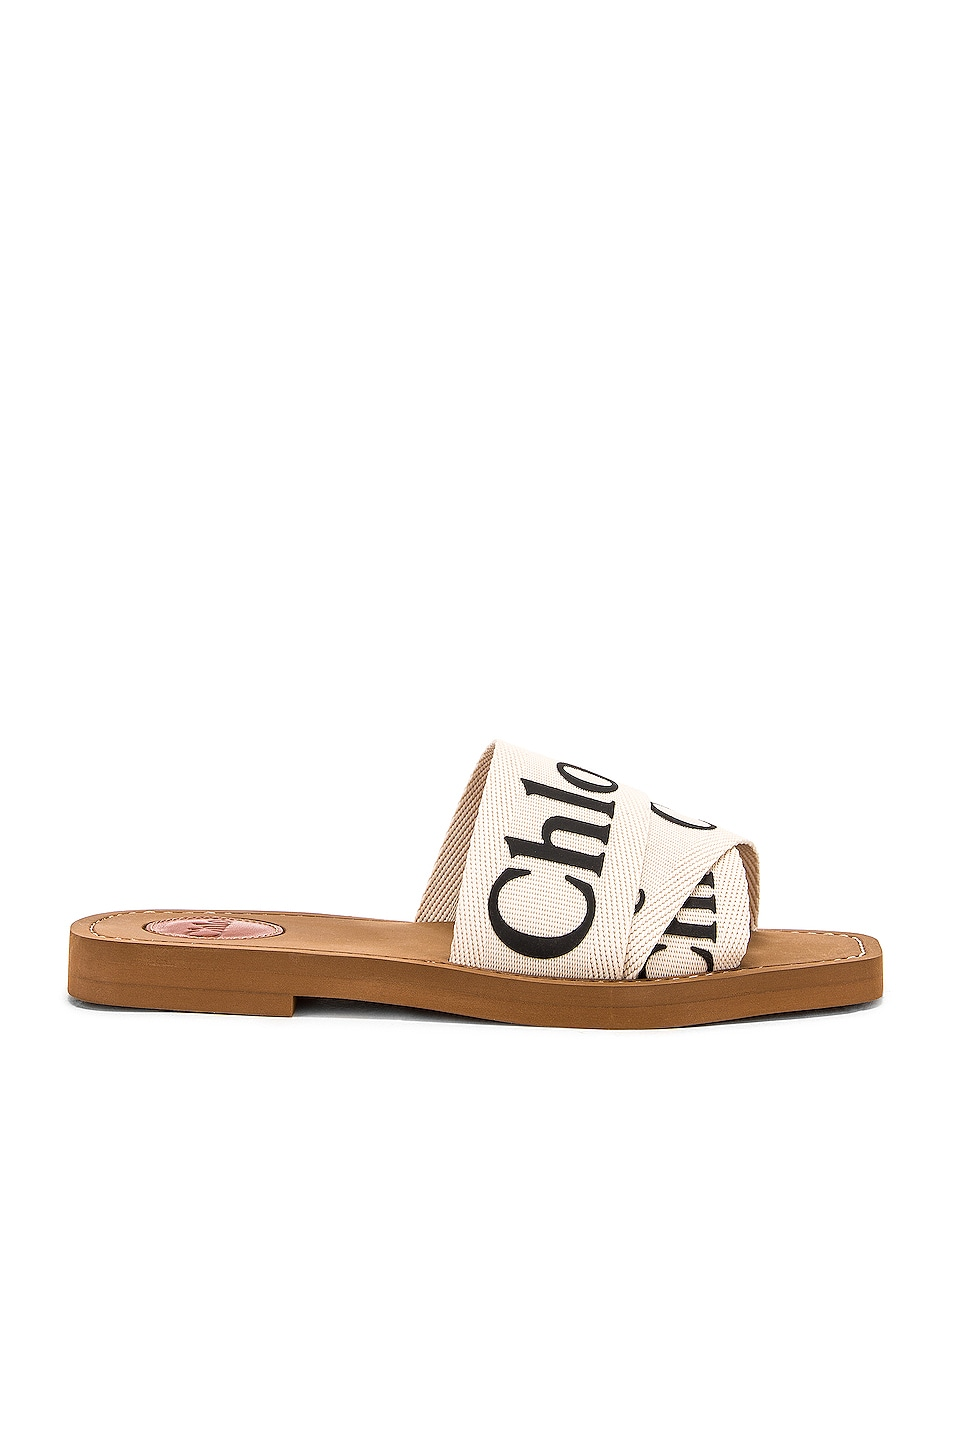 Image 2 of Chloe Logo Sandals in White